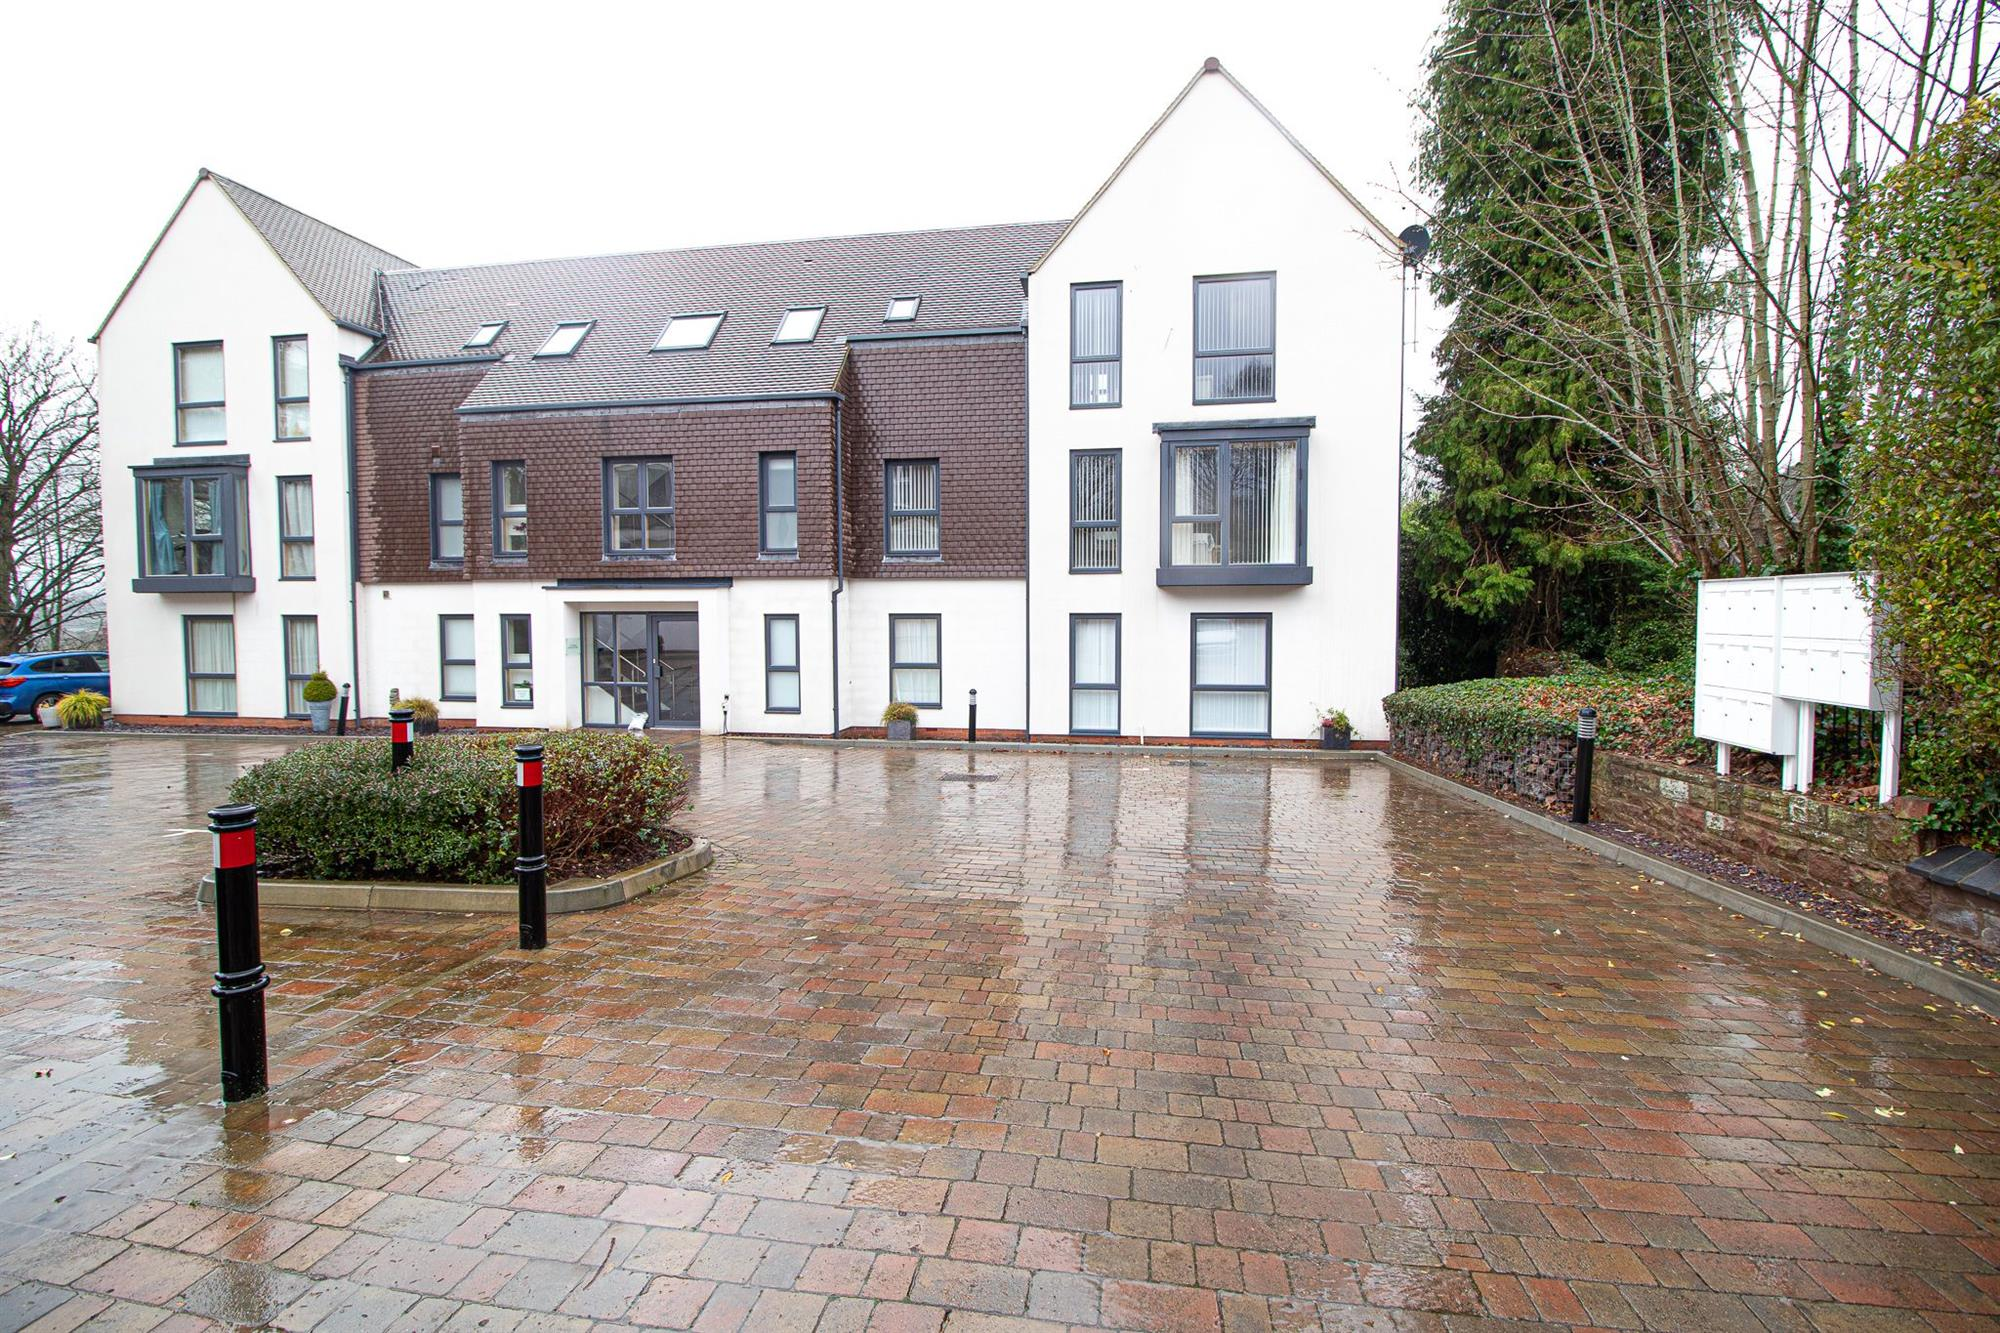 Flat , Monmouth House, Hereford Road, Monmouth